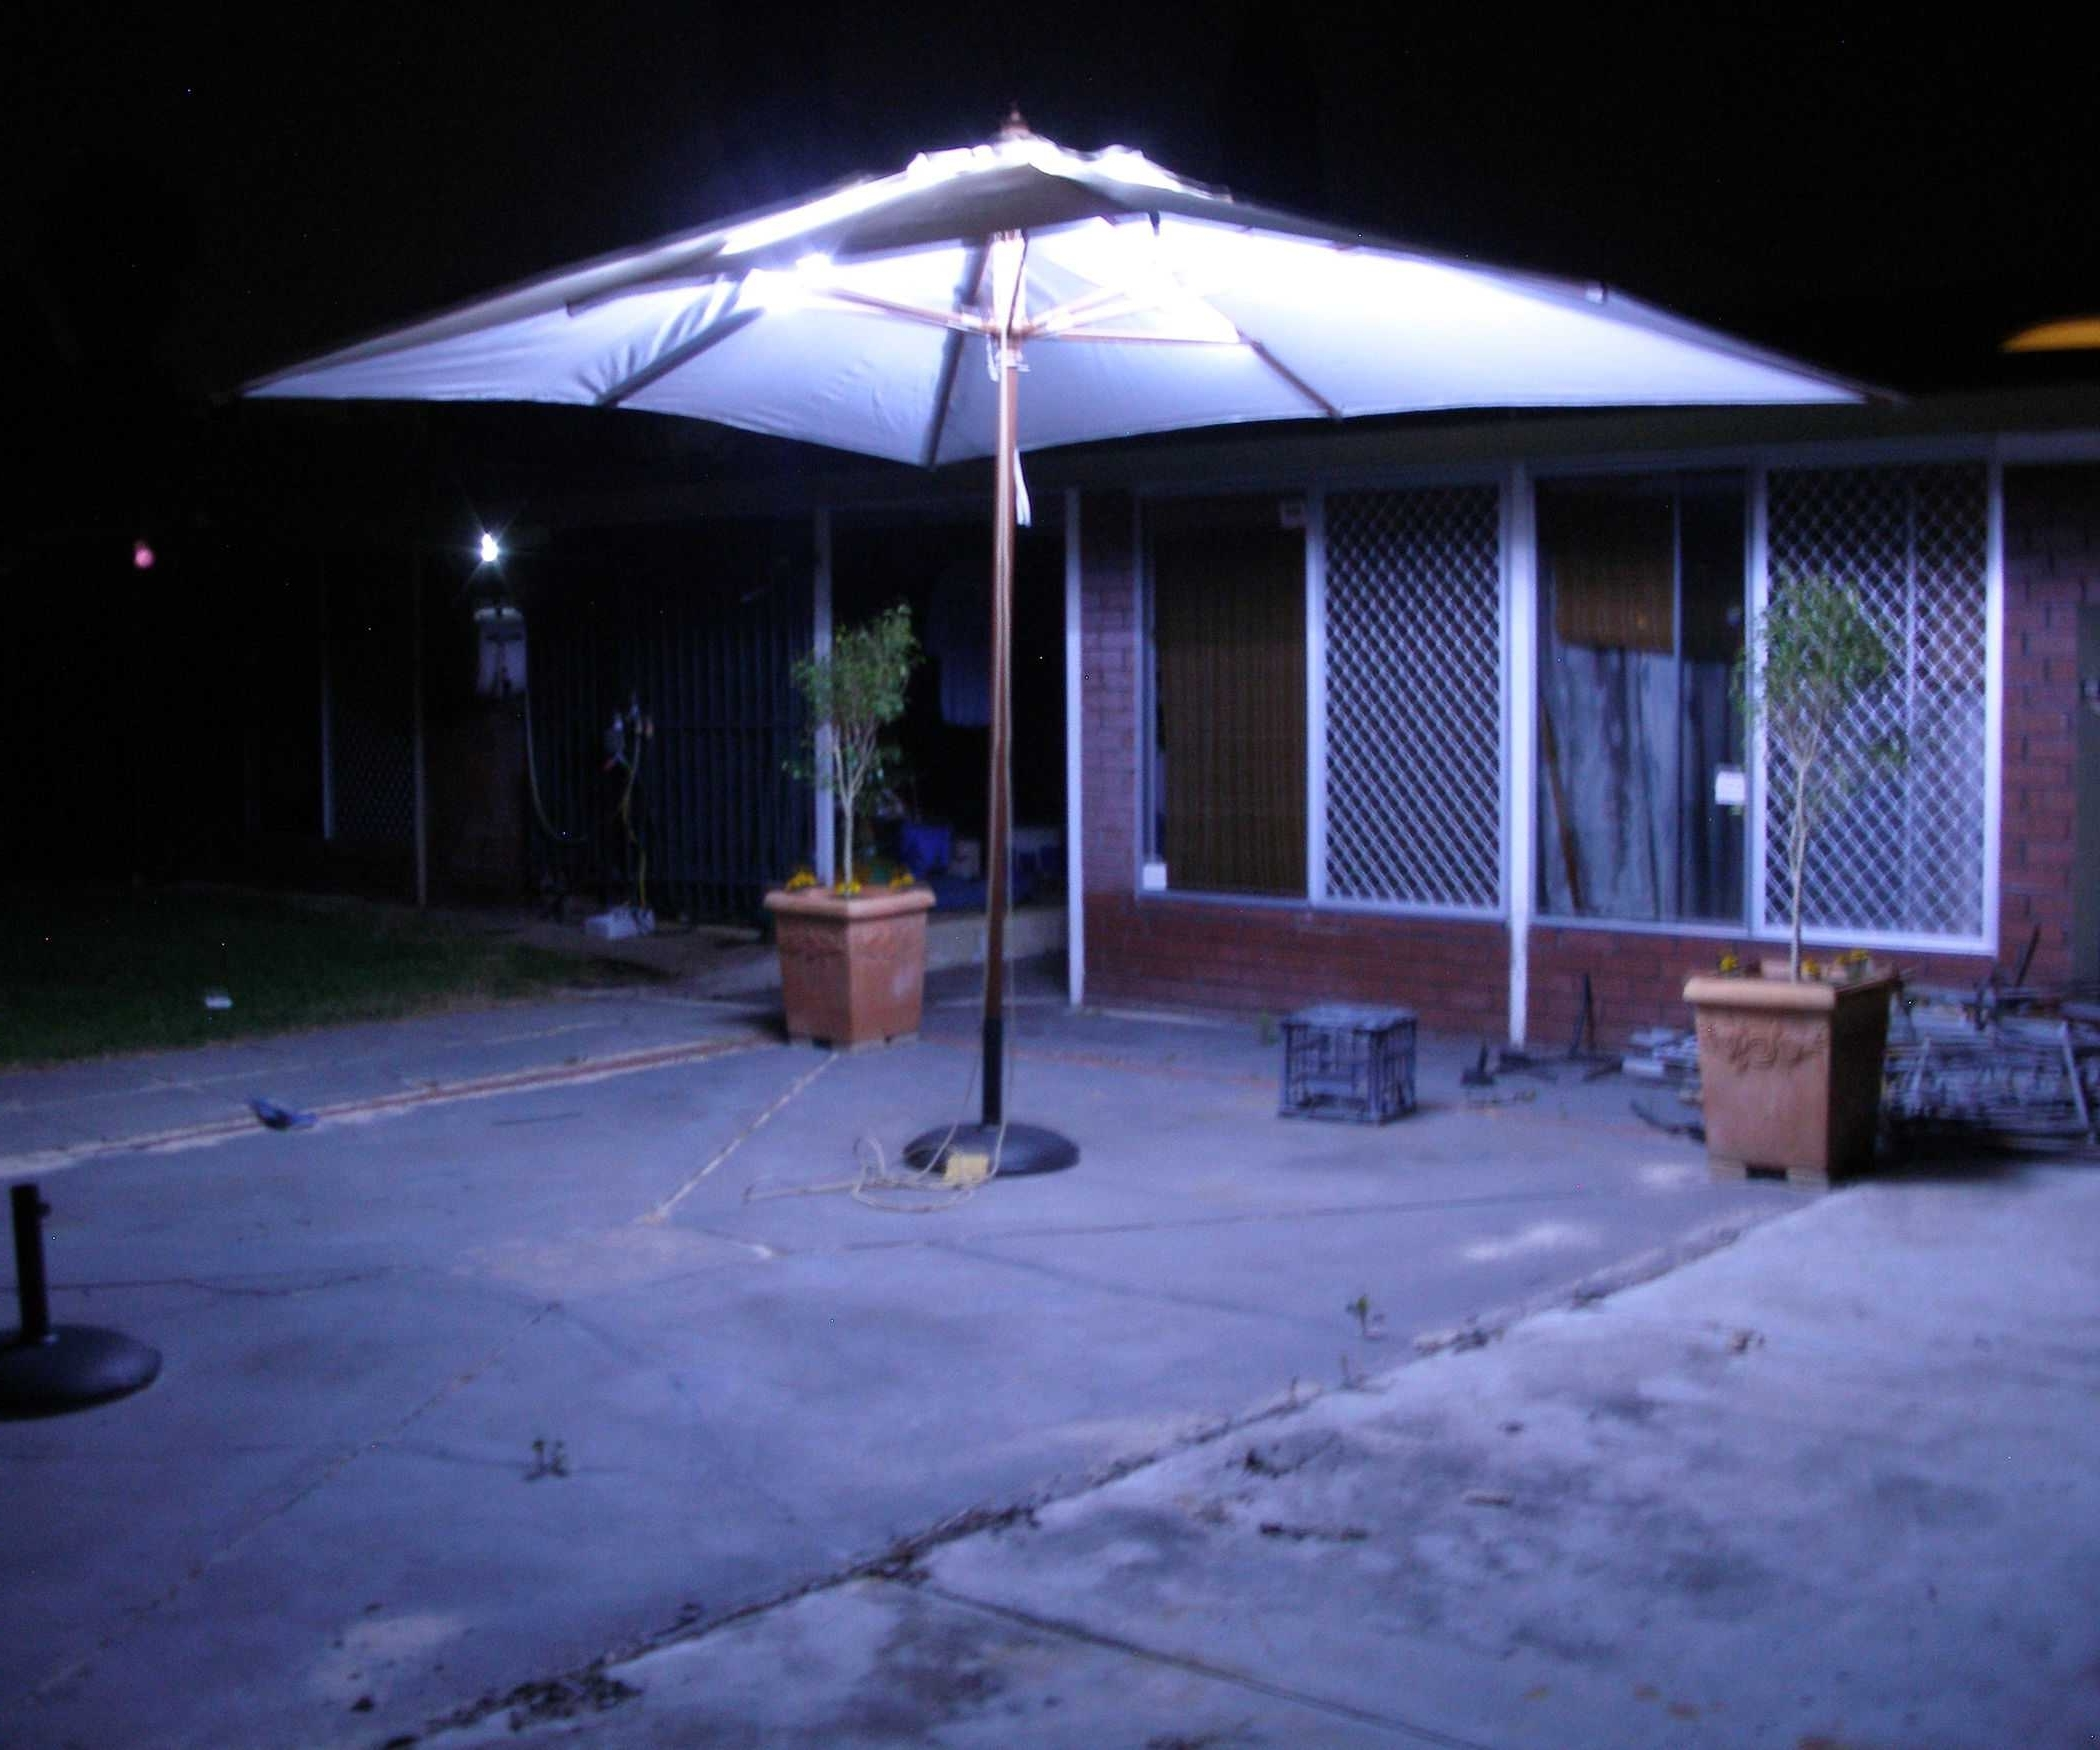 Lighted Umbrellas For Patio For Well Known Incredible Lighted Umbrella For Patio Collection Including Outdoor (View 12 of 20)